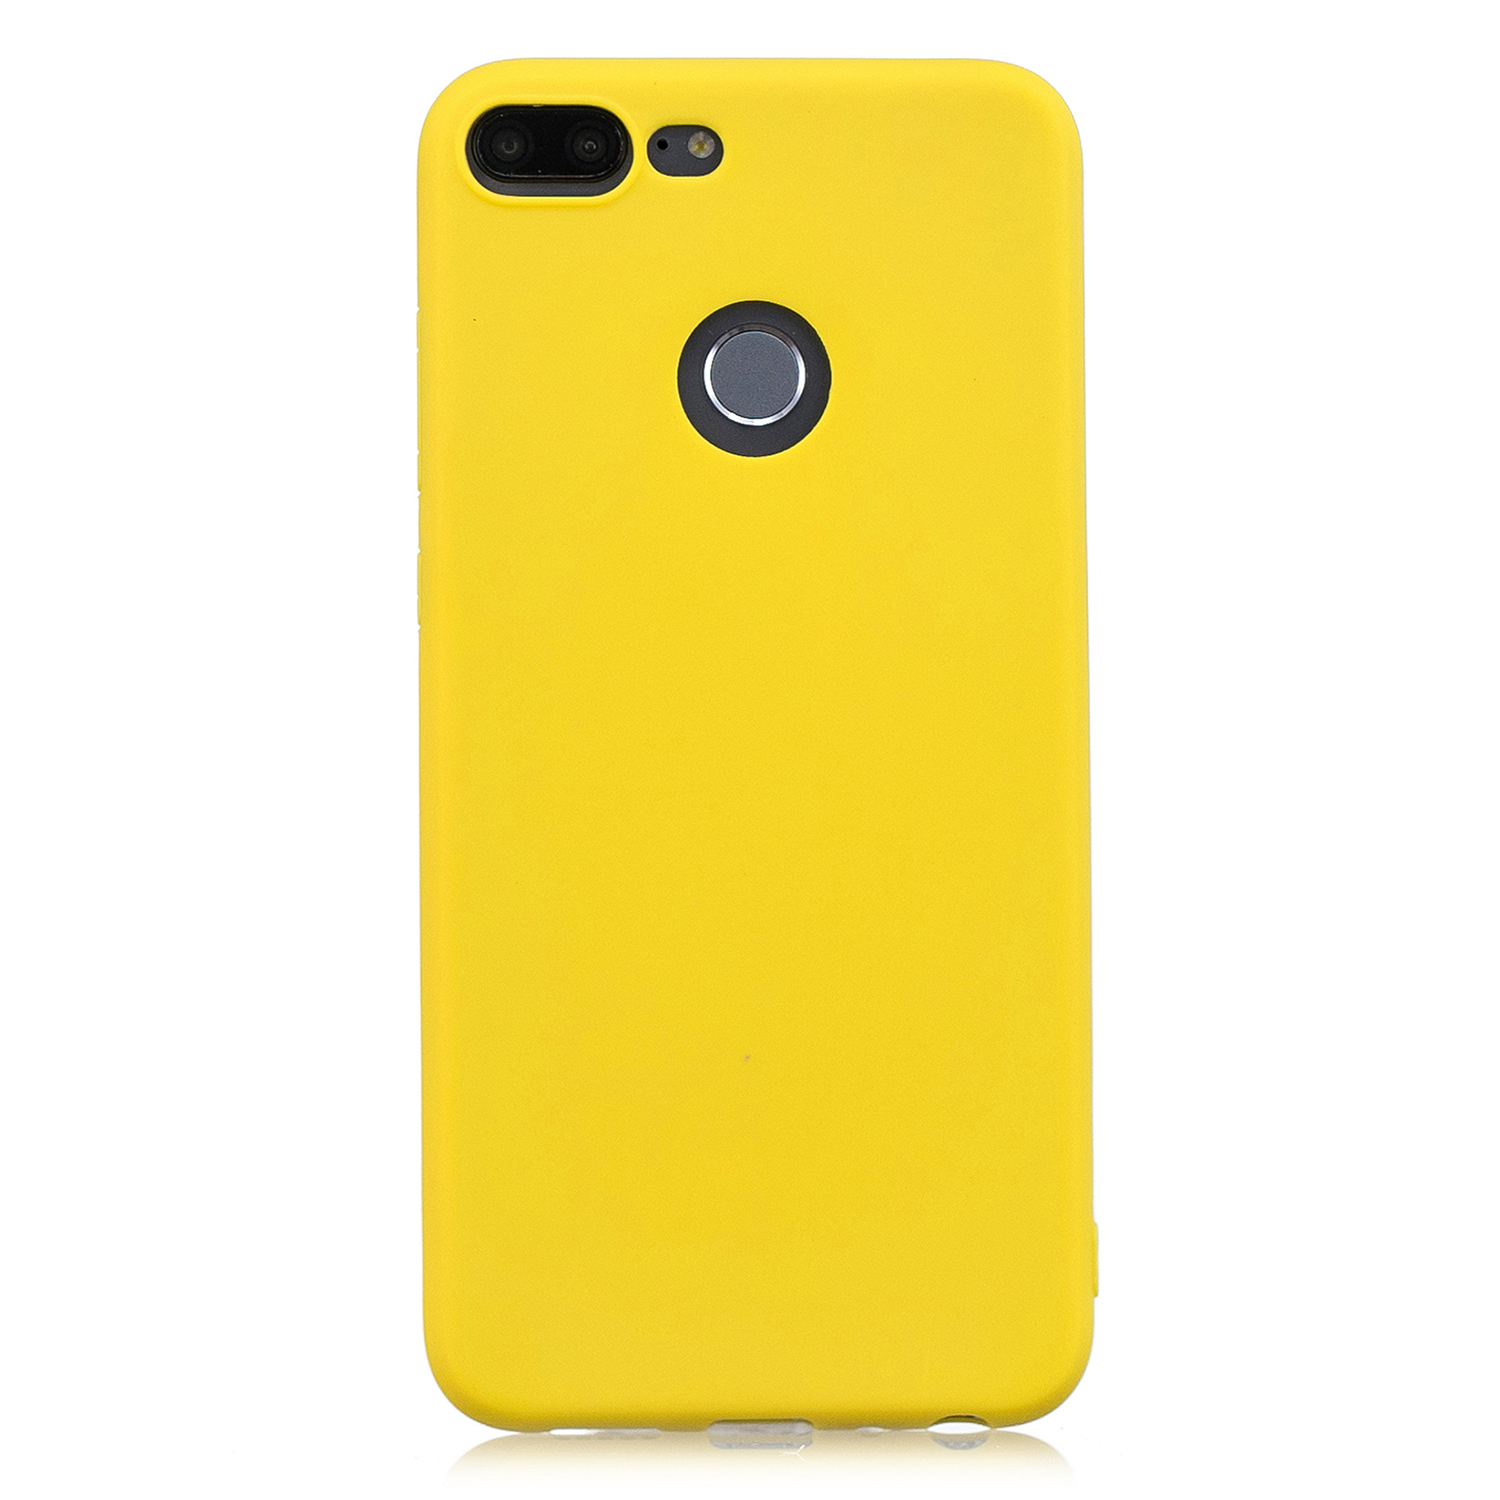 for HUAWEI Honor 9 lite Cute Candy Color Matte TPU Anti-scratch Non-slip Protective Cover Back Case yellow